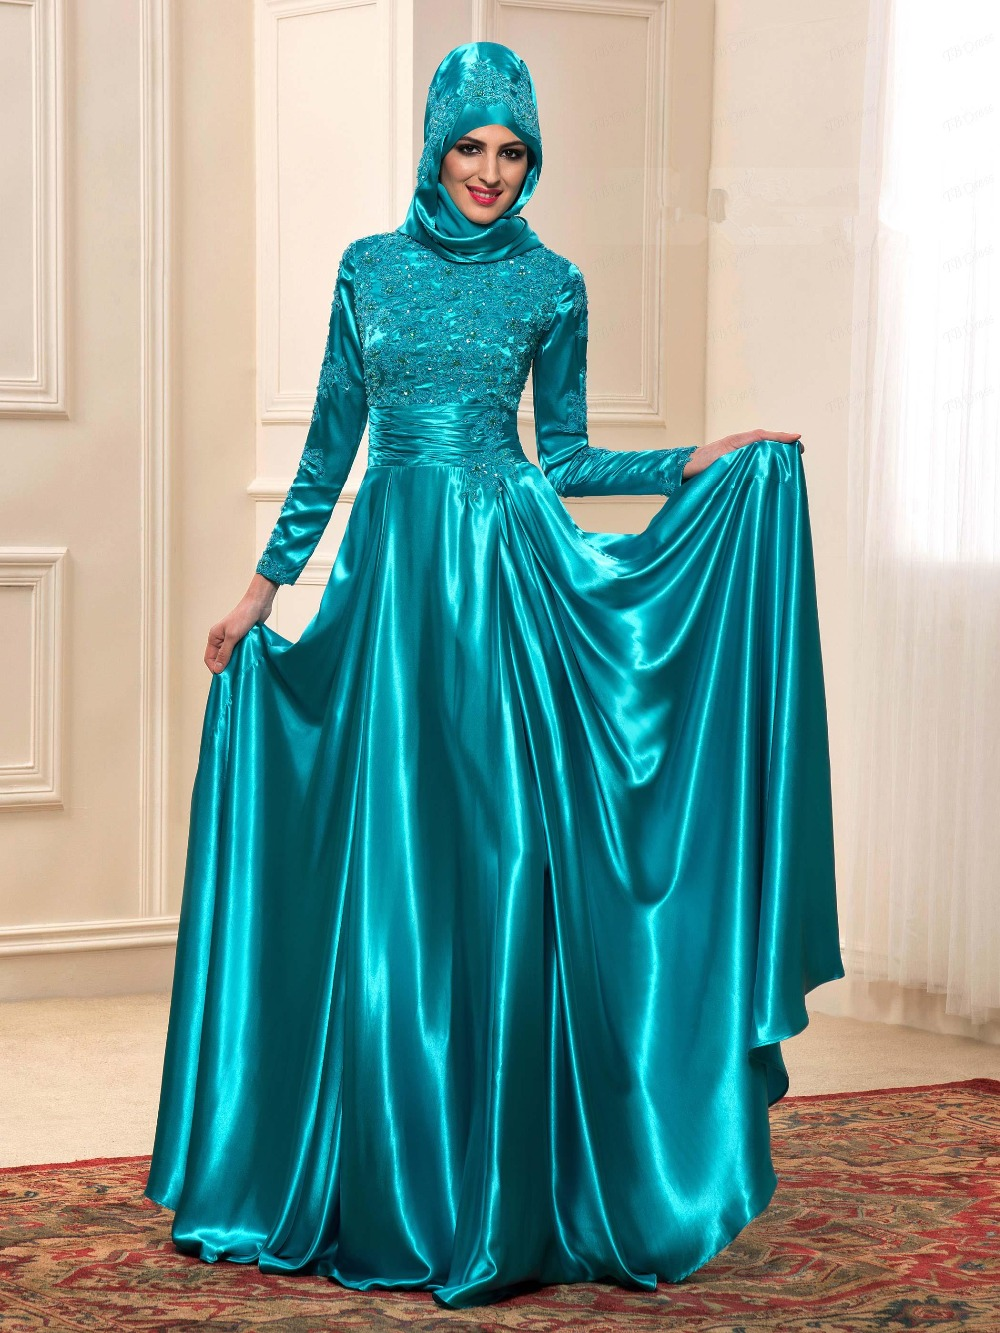 Dress code evening gown - Green Long Sleeve Muslim Evening Dresses 2016 Straight Hijab Arabic Evening Gowns High Neck Lace Appliques Satin Party Dress In Evening Dresses From